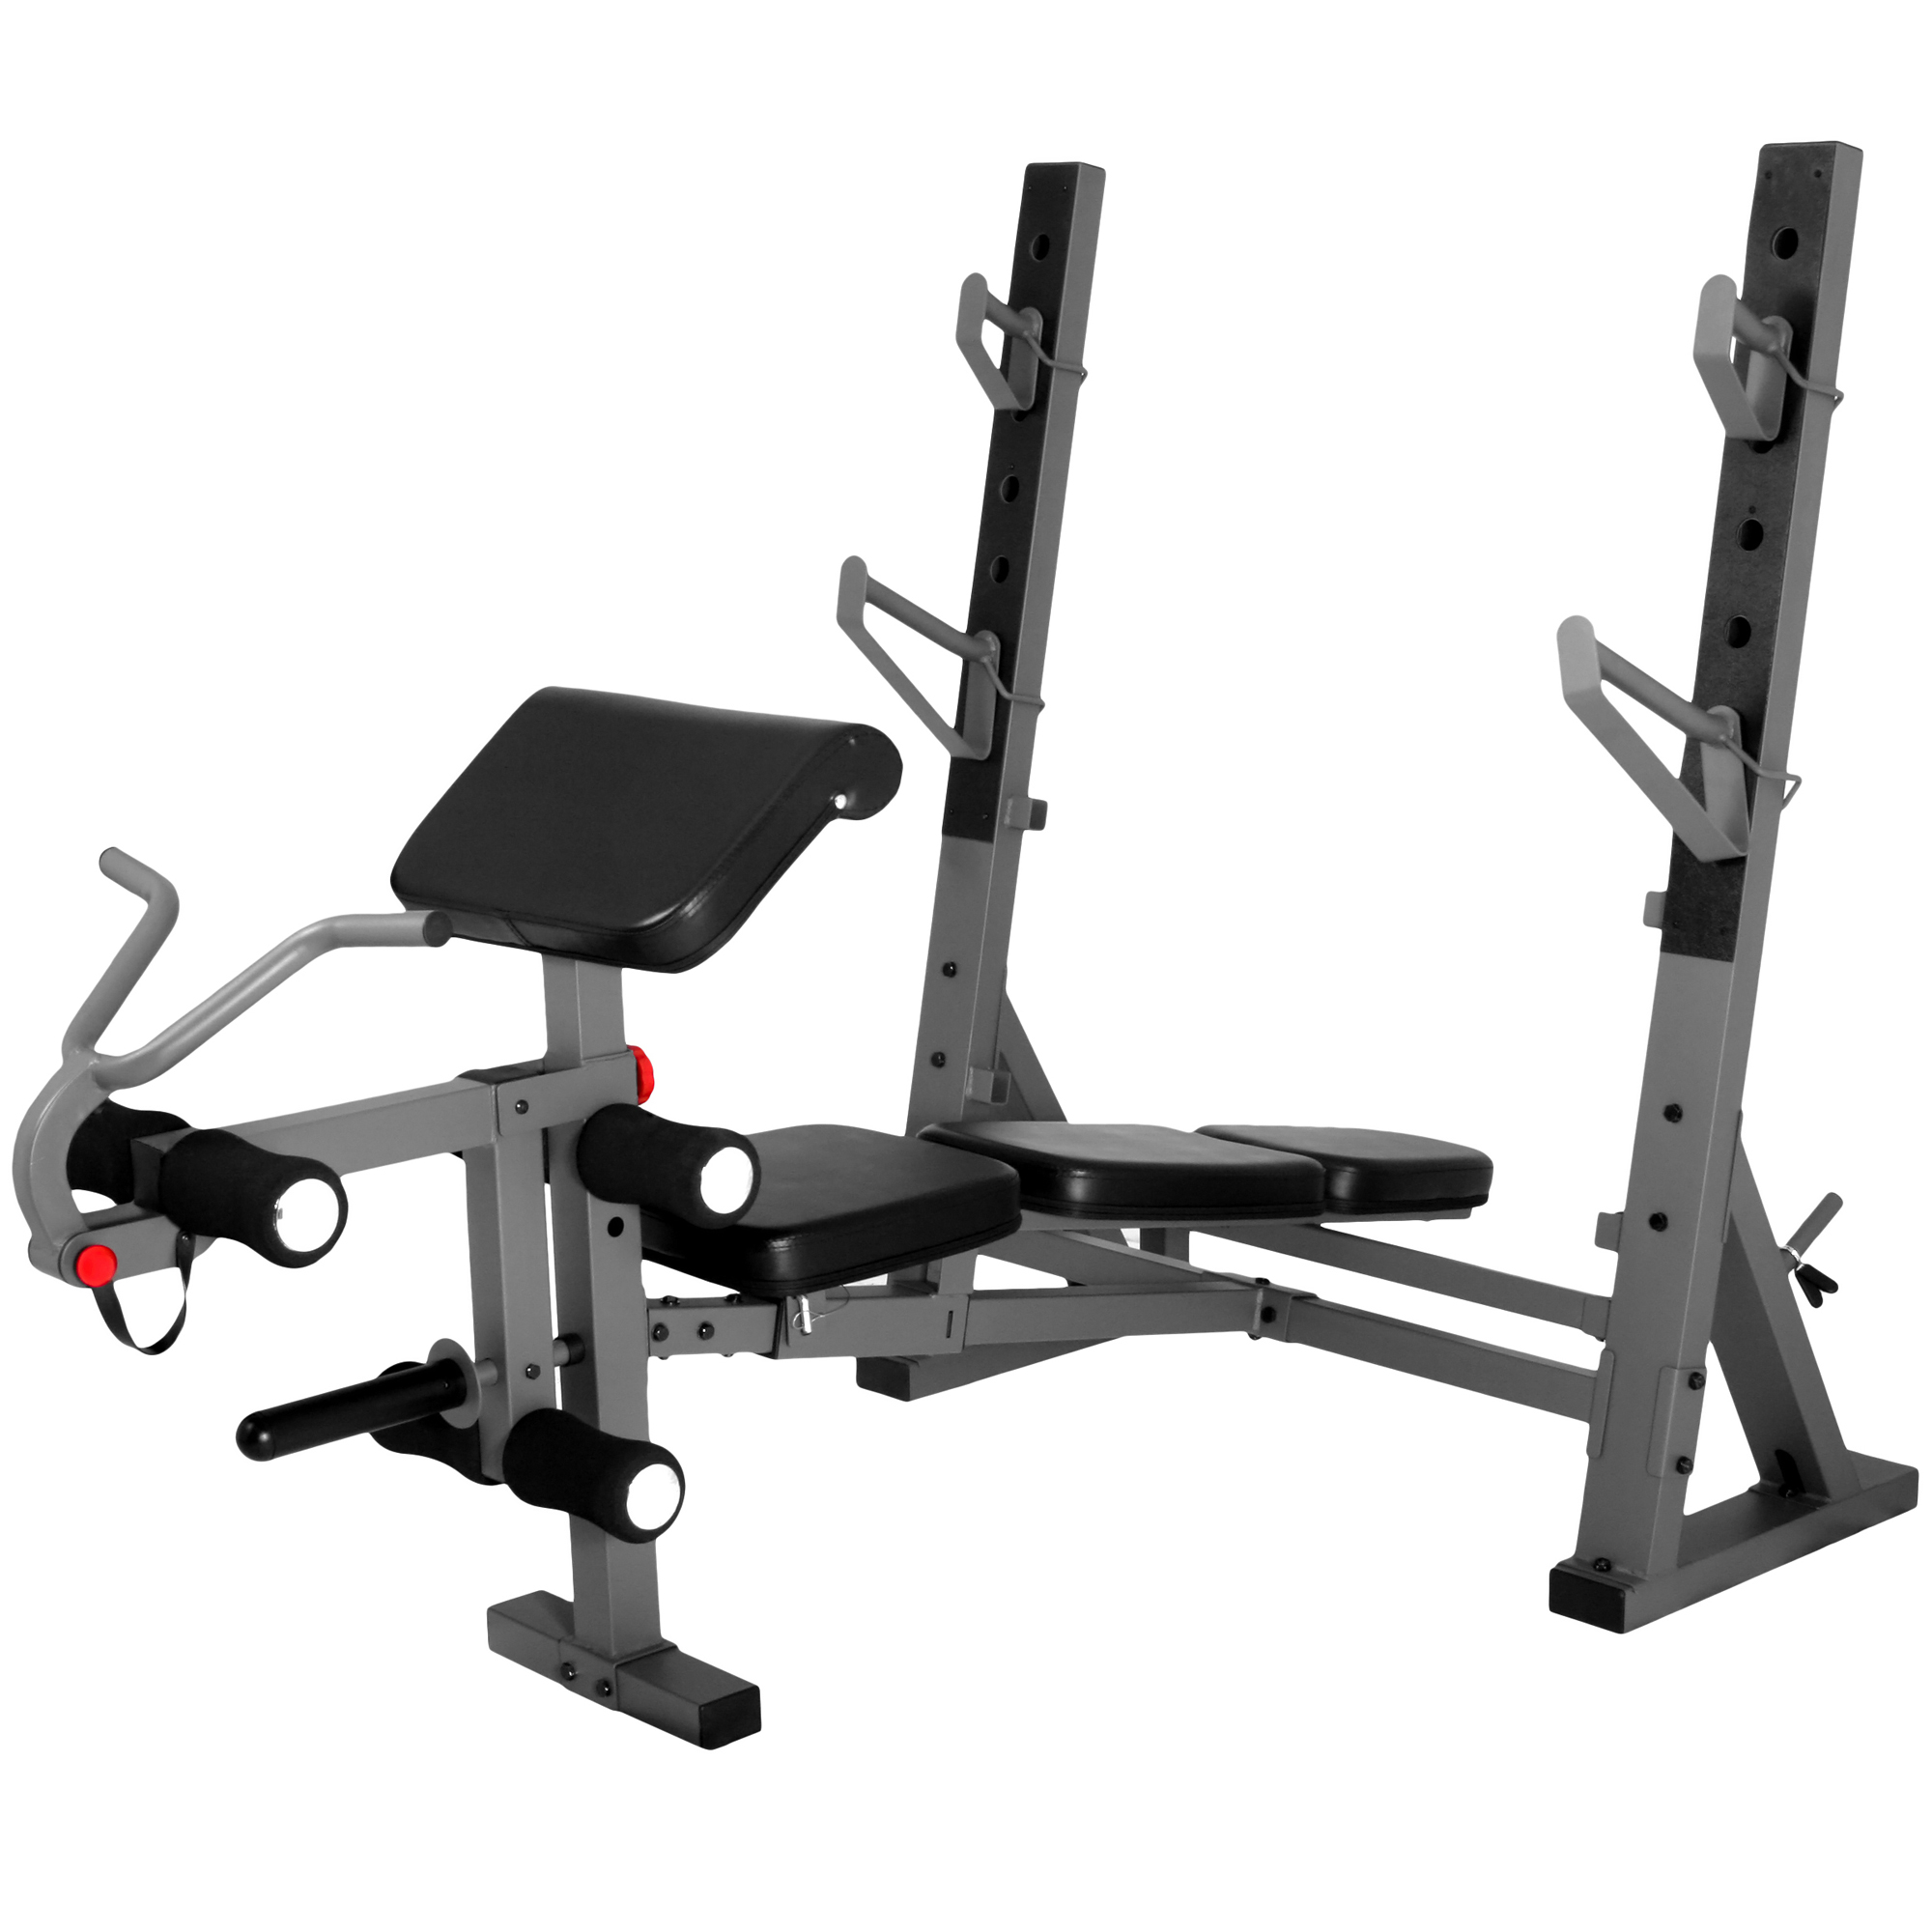 The X Mark International Olympic Weight Bench With Leg